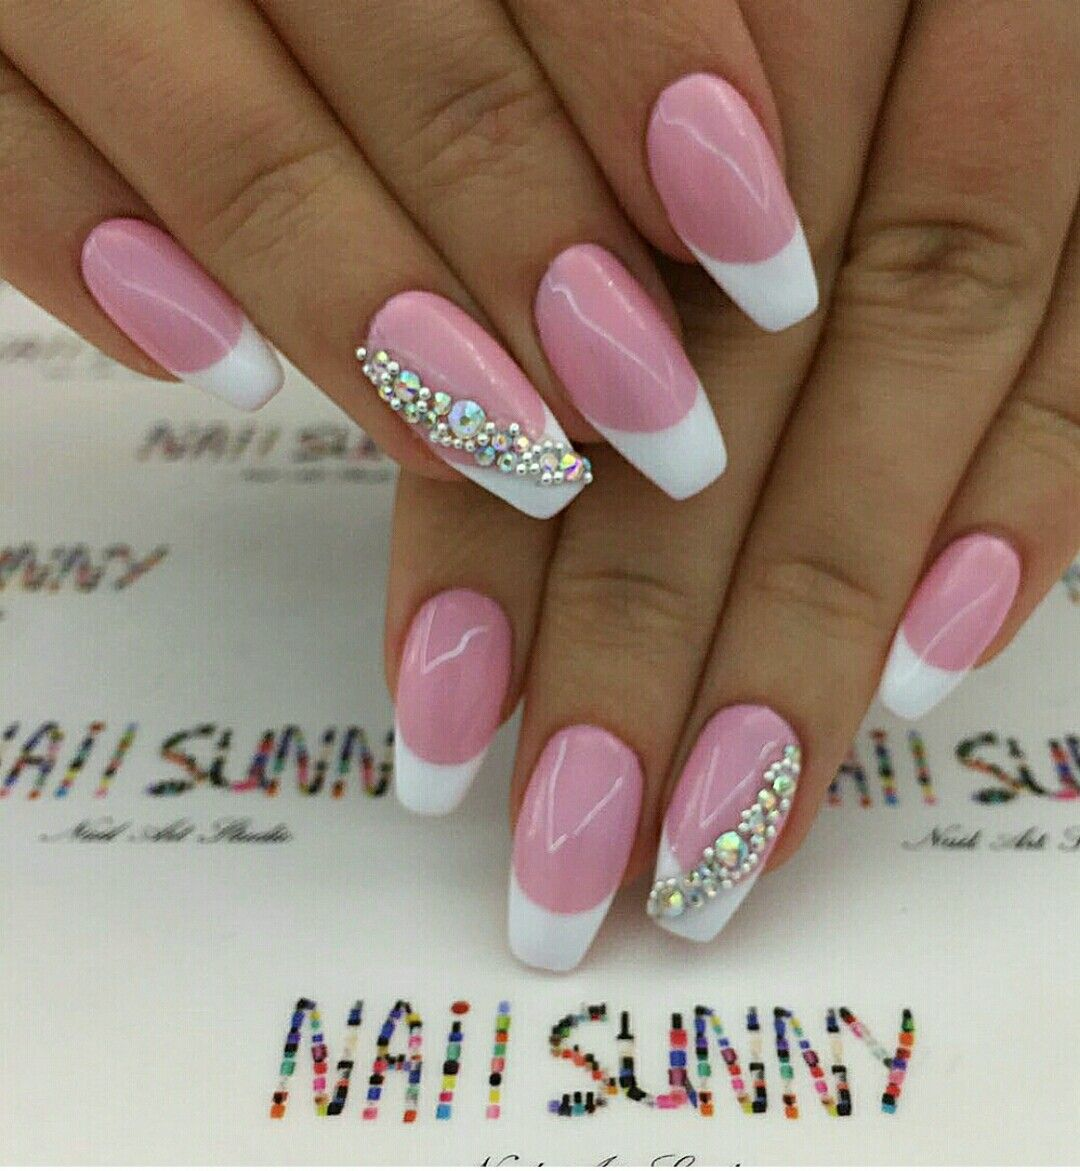 Pin by Shahidah Phillips on nail designs   Pinterest   Ongles ...